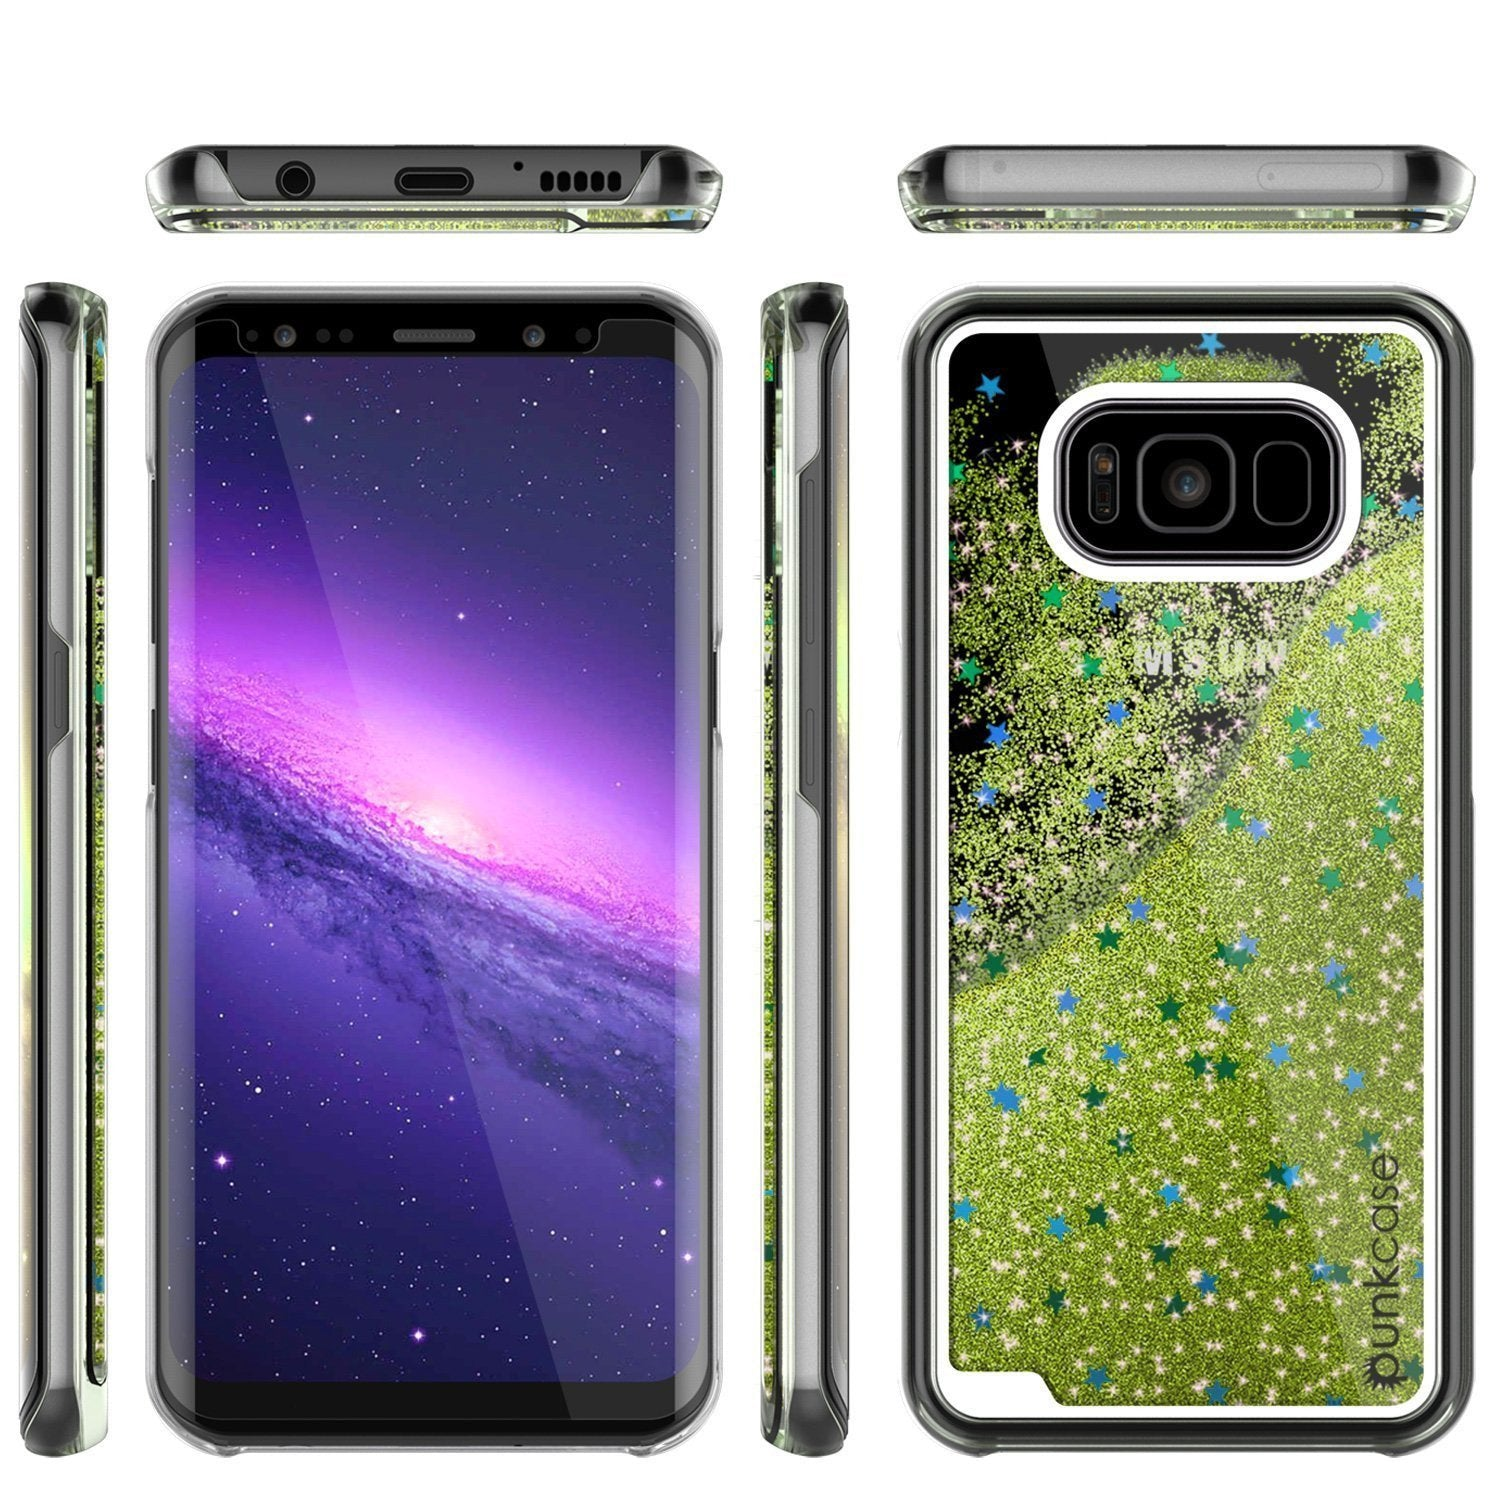 S8 Plus Case, Punkcase [Liquid Series] Protective Dual Layer Floating Glitter Cover with lots of Bling & Sparkle + PunkShield Screen Protector for Samsungs Galaxy S8+ (Light Green] - PunkCase NZ